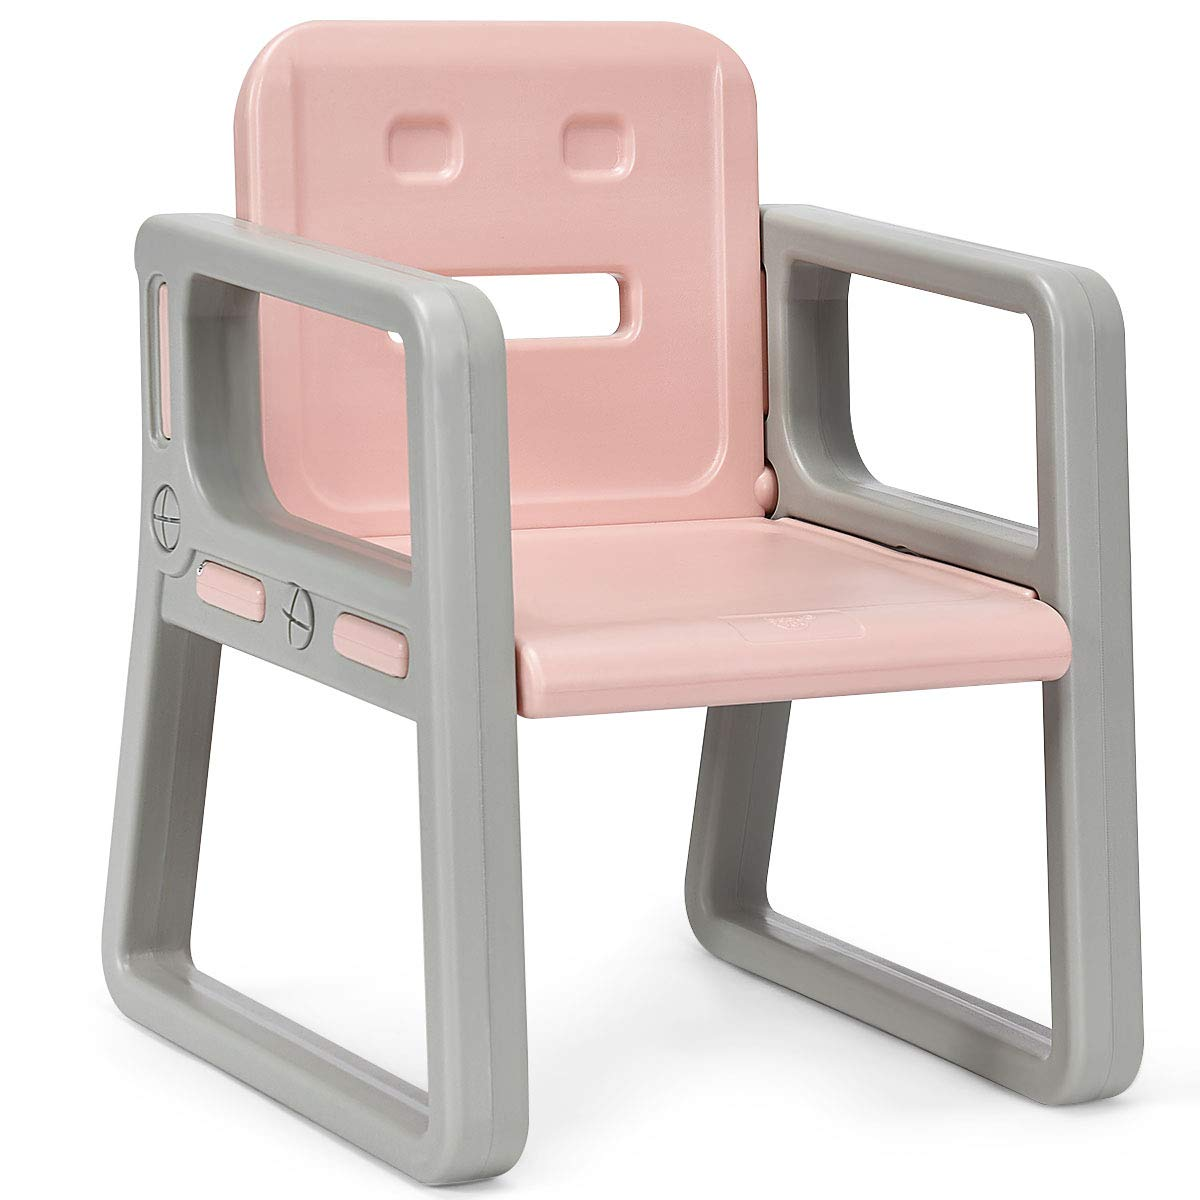 Costzon 3 Piece Kids Table and 2 Chairs Set, Learning Activity Play Table, Baby Dining Table, Children Desk Chair for 1-3 Years, Kids Furniture Set (Pink) by Costzon (Image #6)